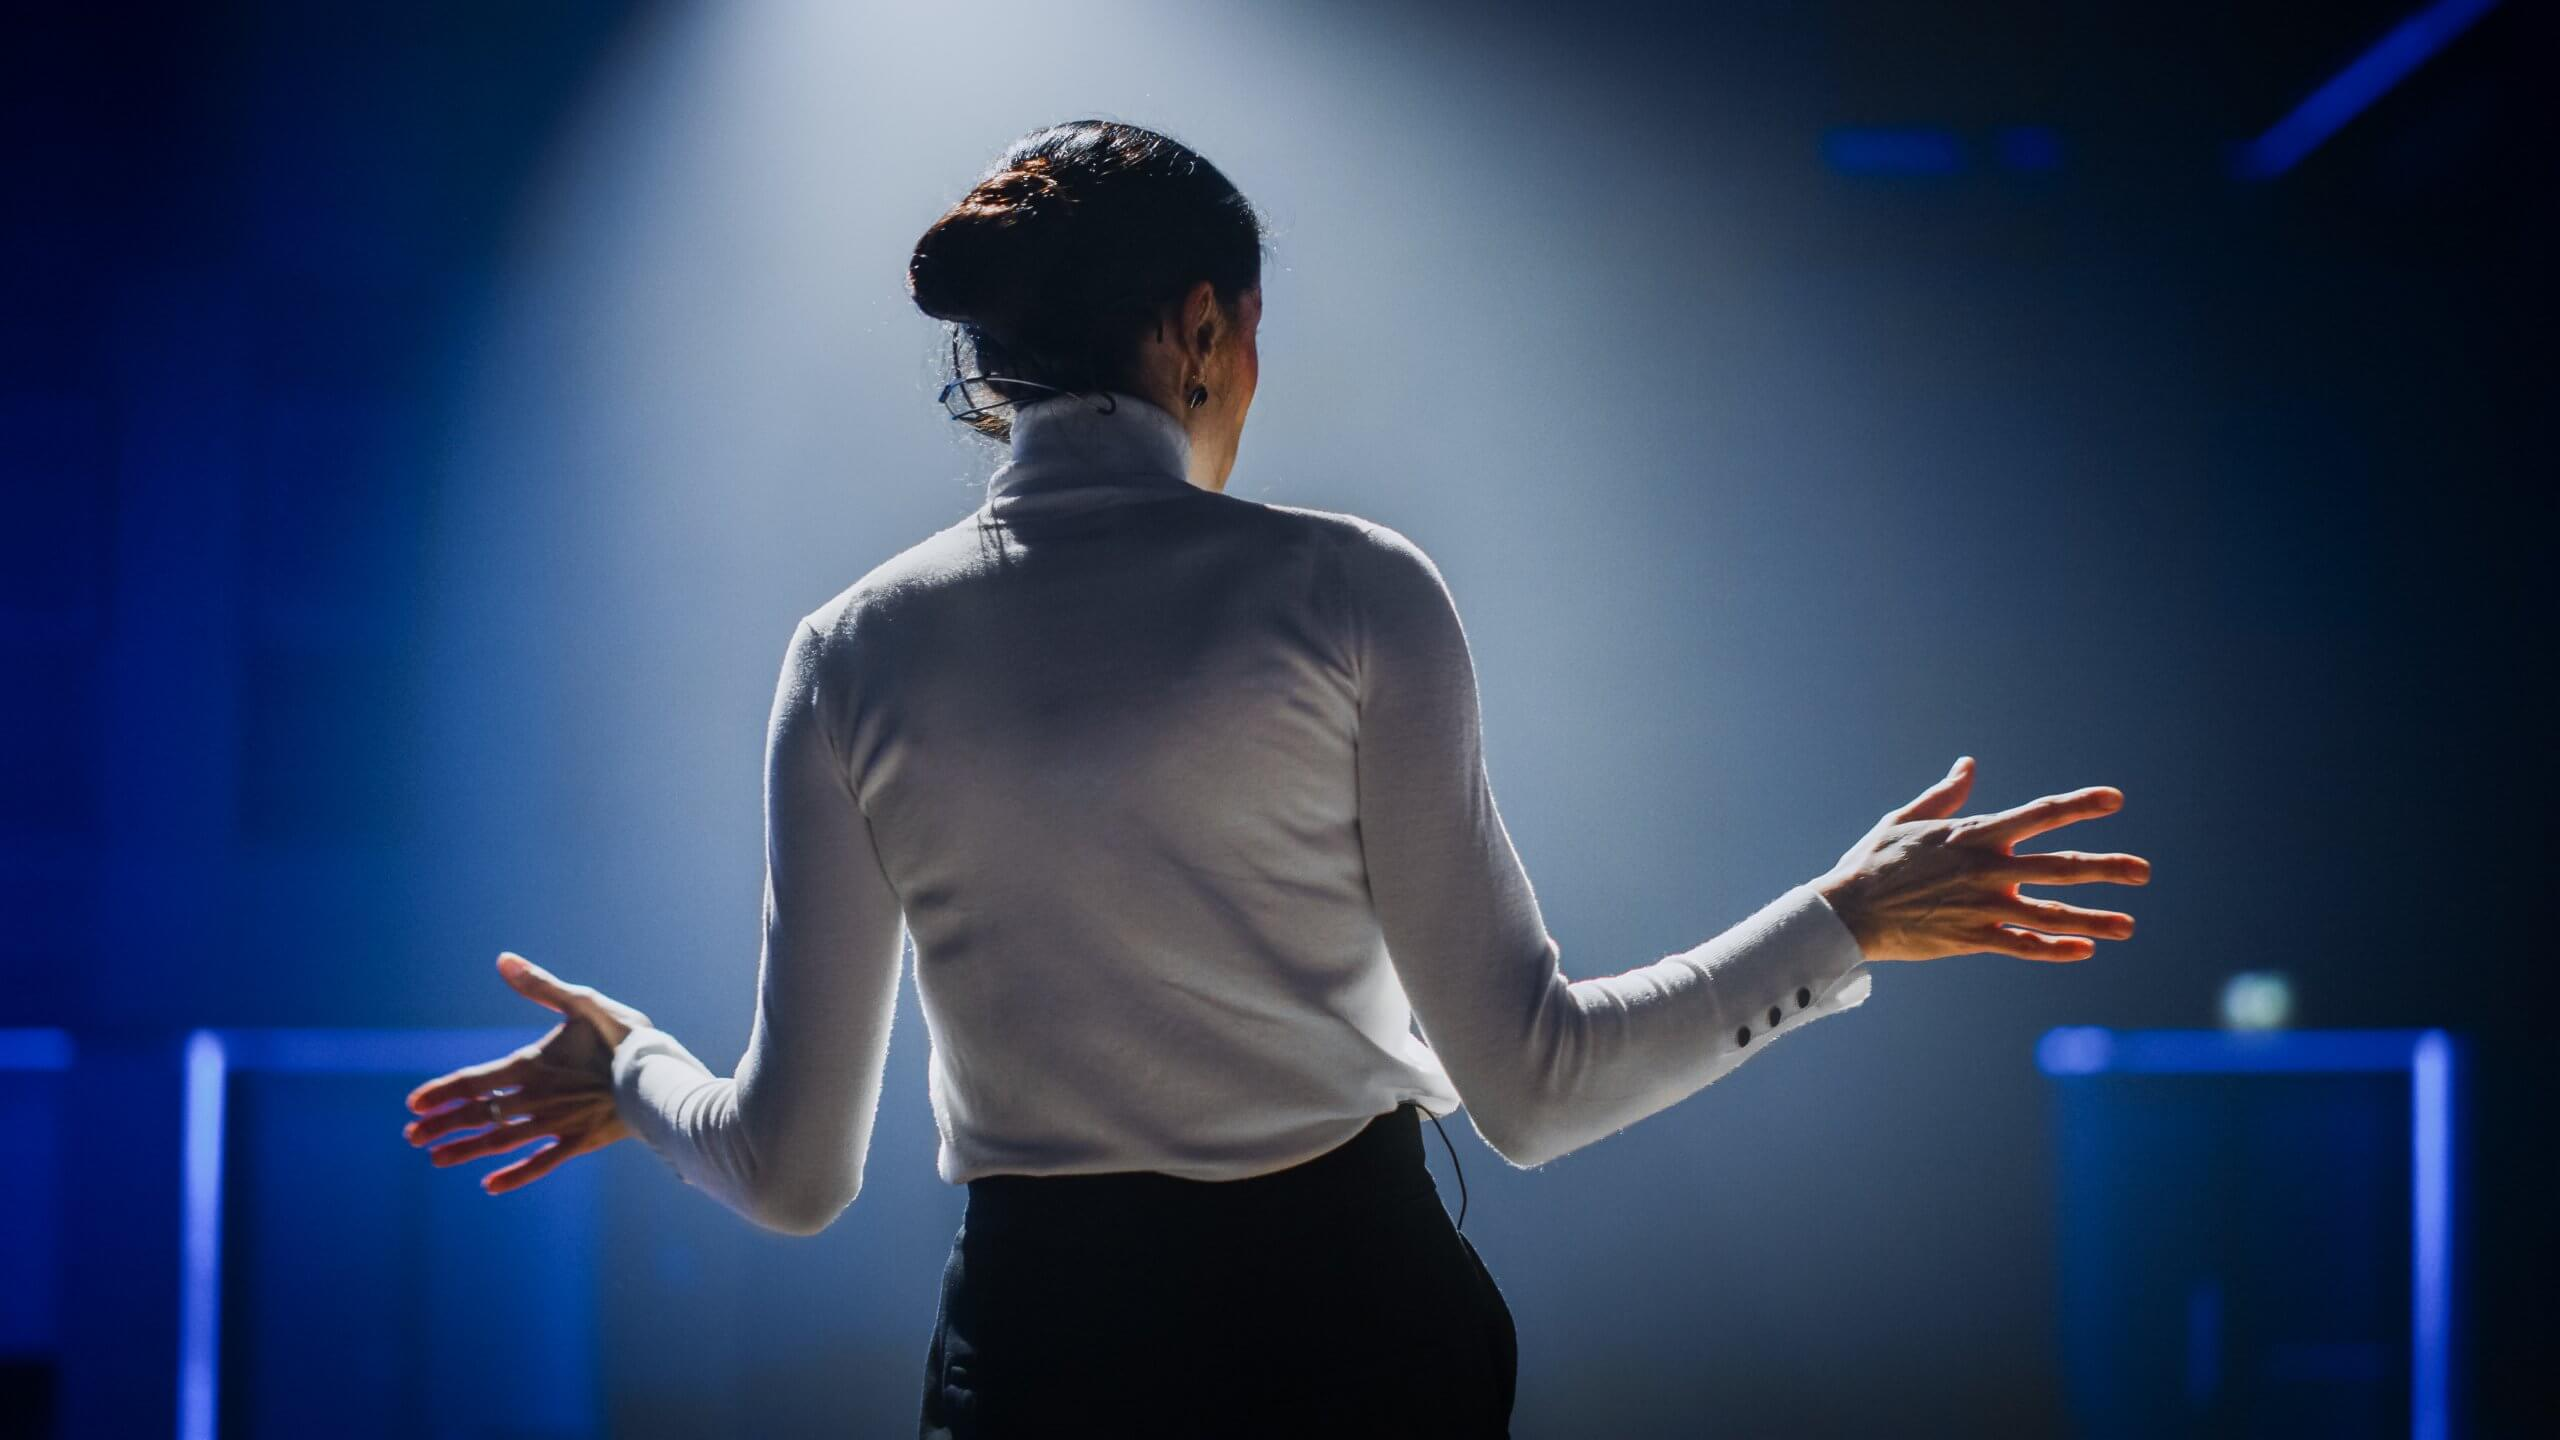 A business woman stood with her back to the camera presenting to an audience.